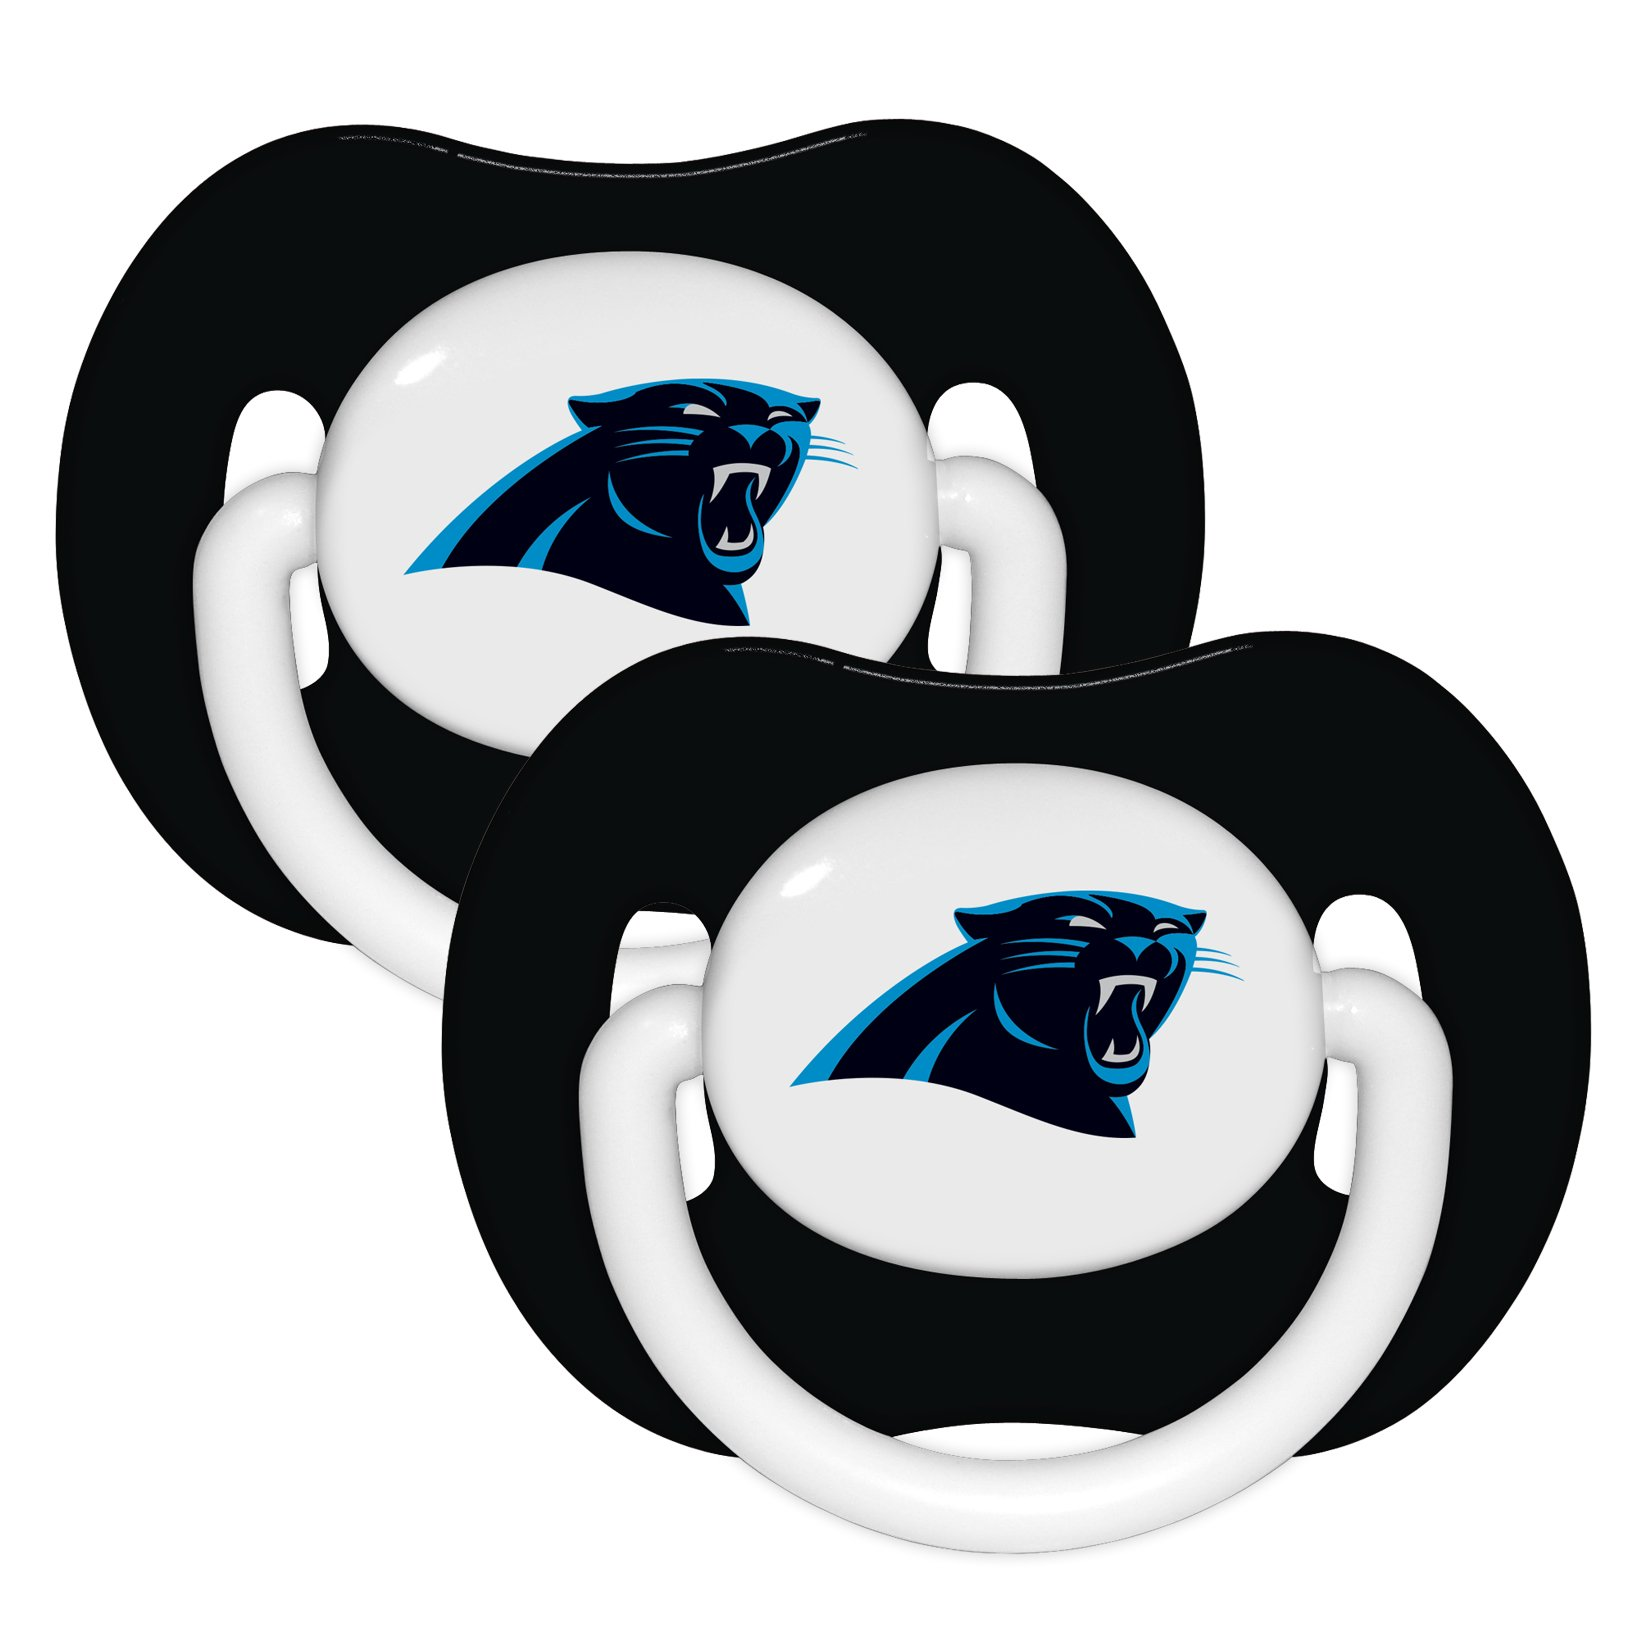 NFL Football 2014 Baby Infant Pacifier 2-Pack - Pick Team